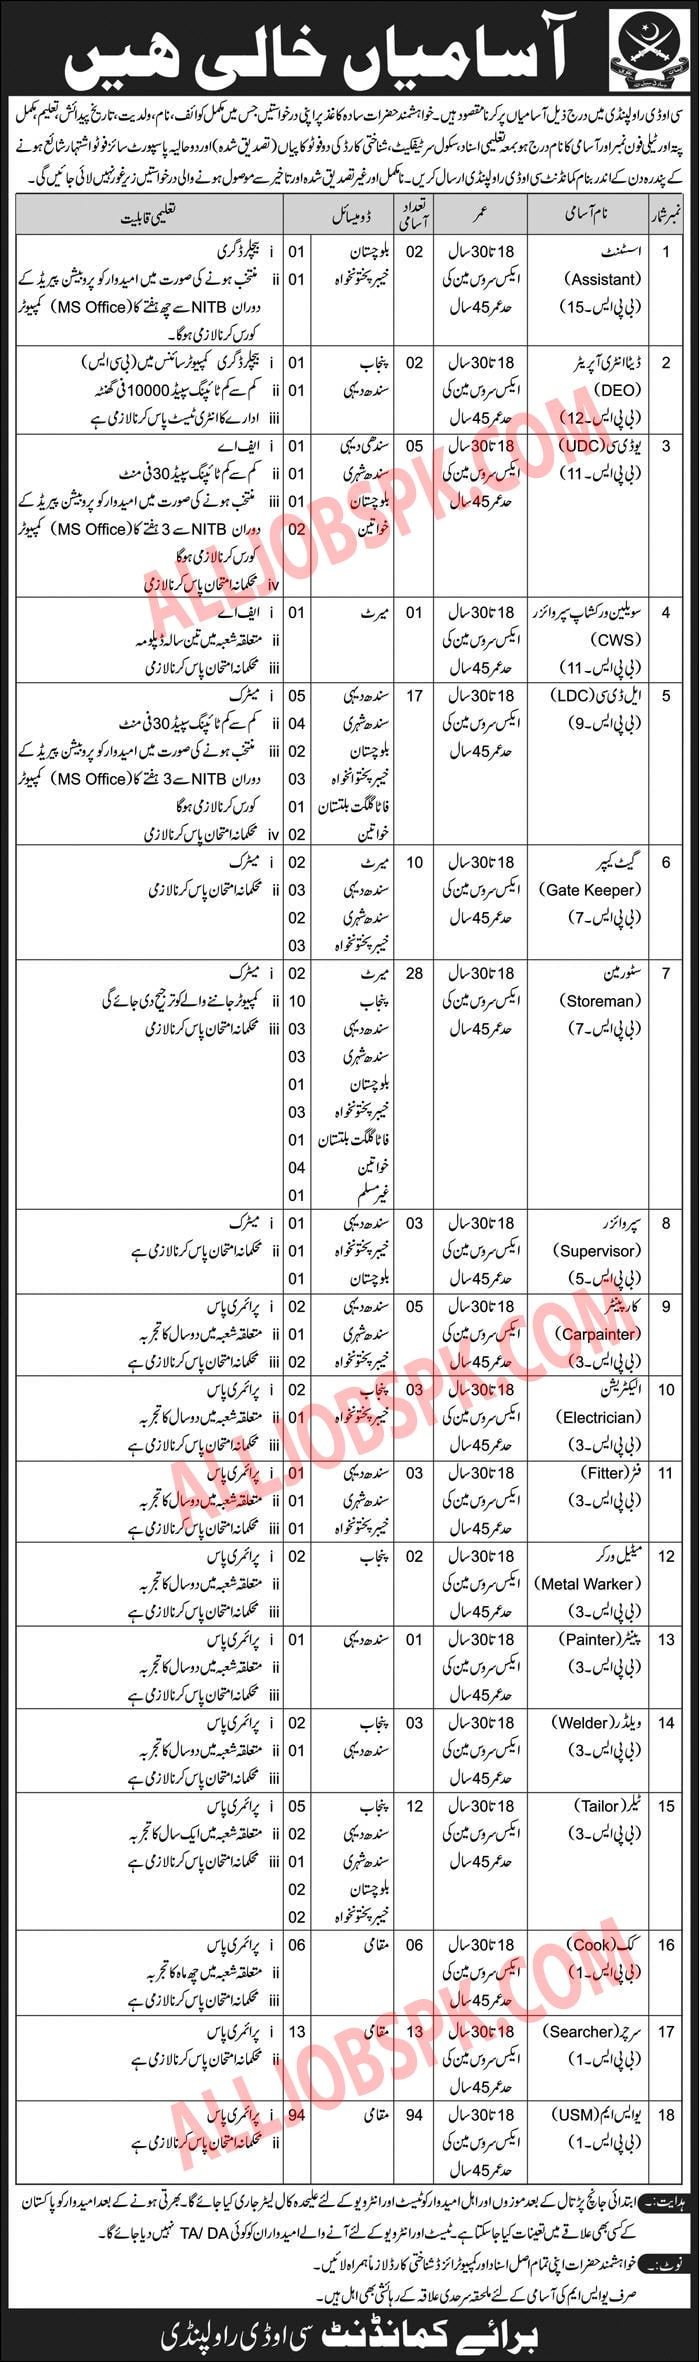 COD Rawalpindi Jobs 2019